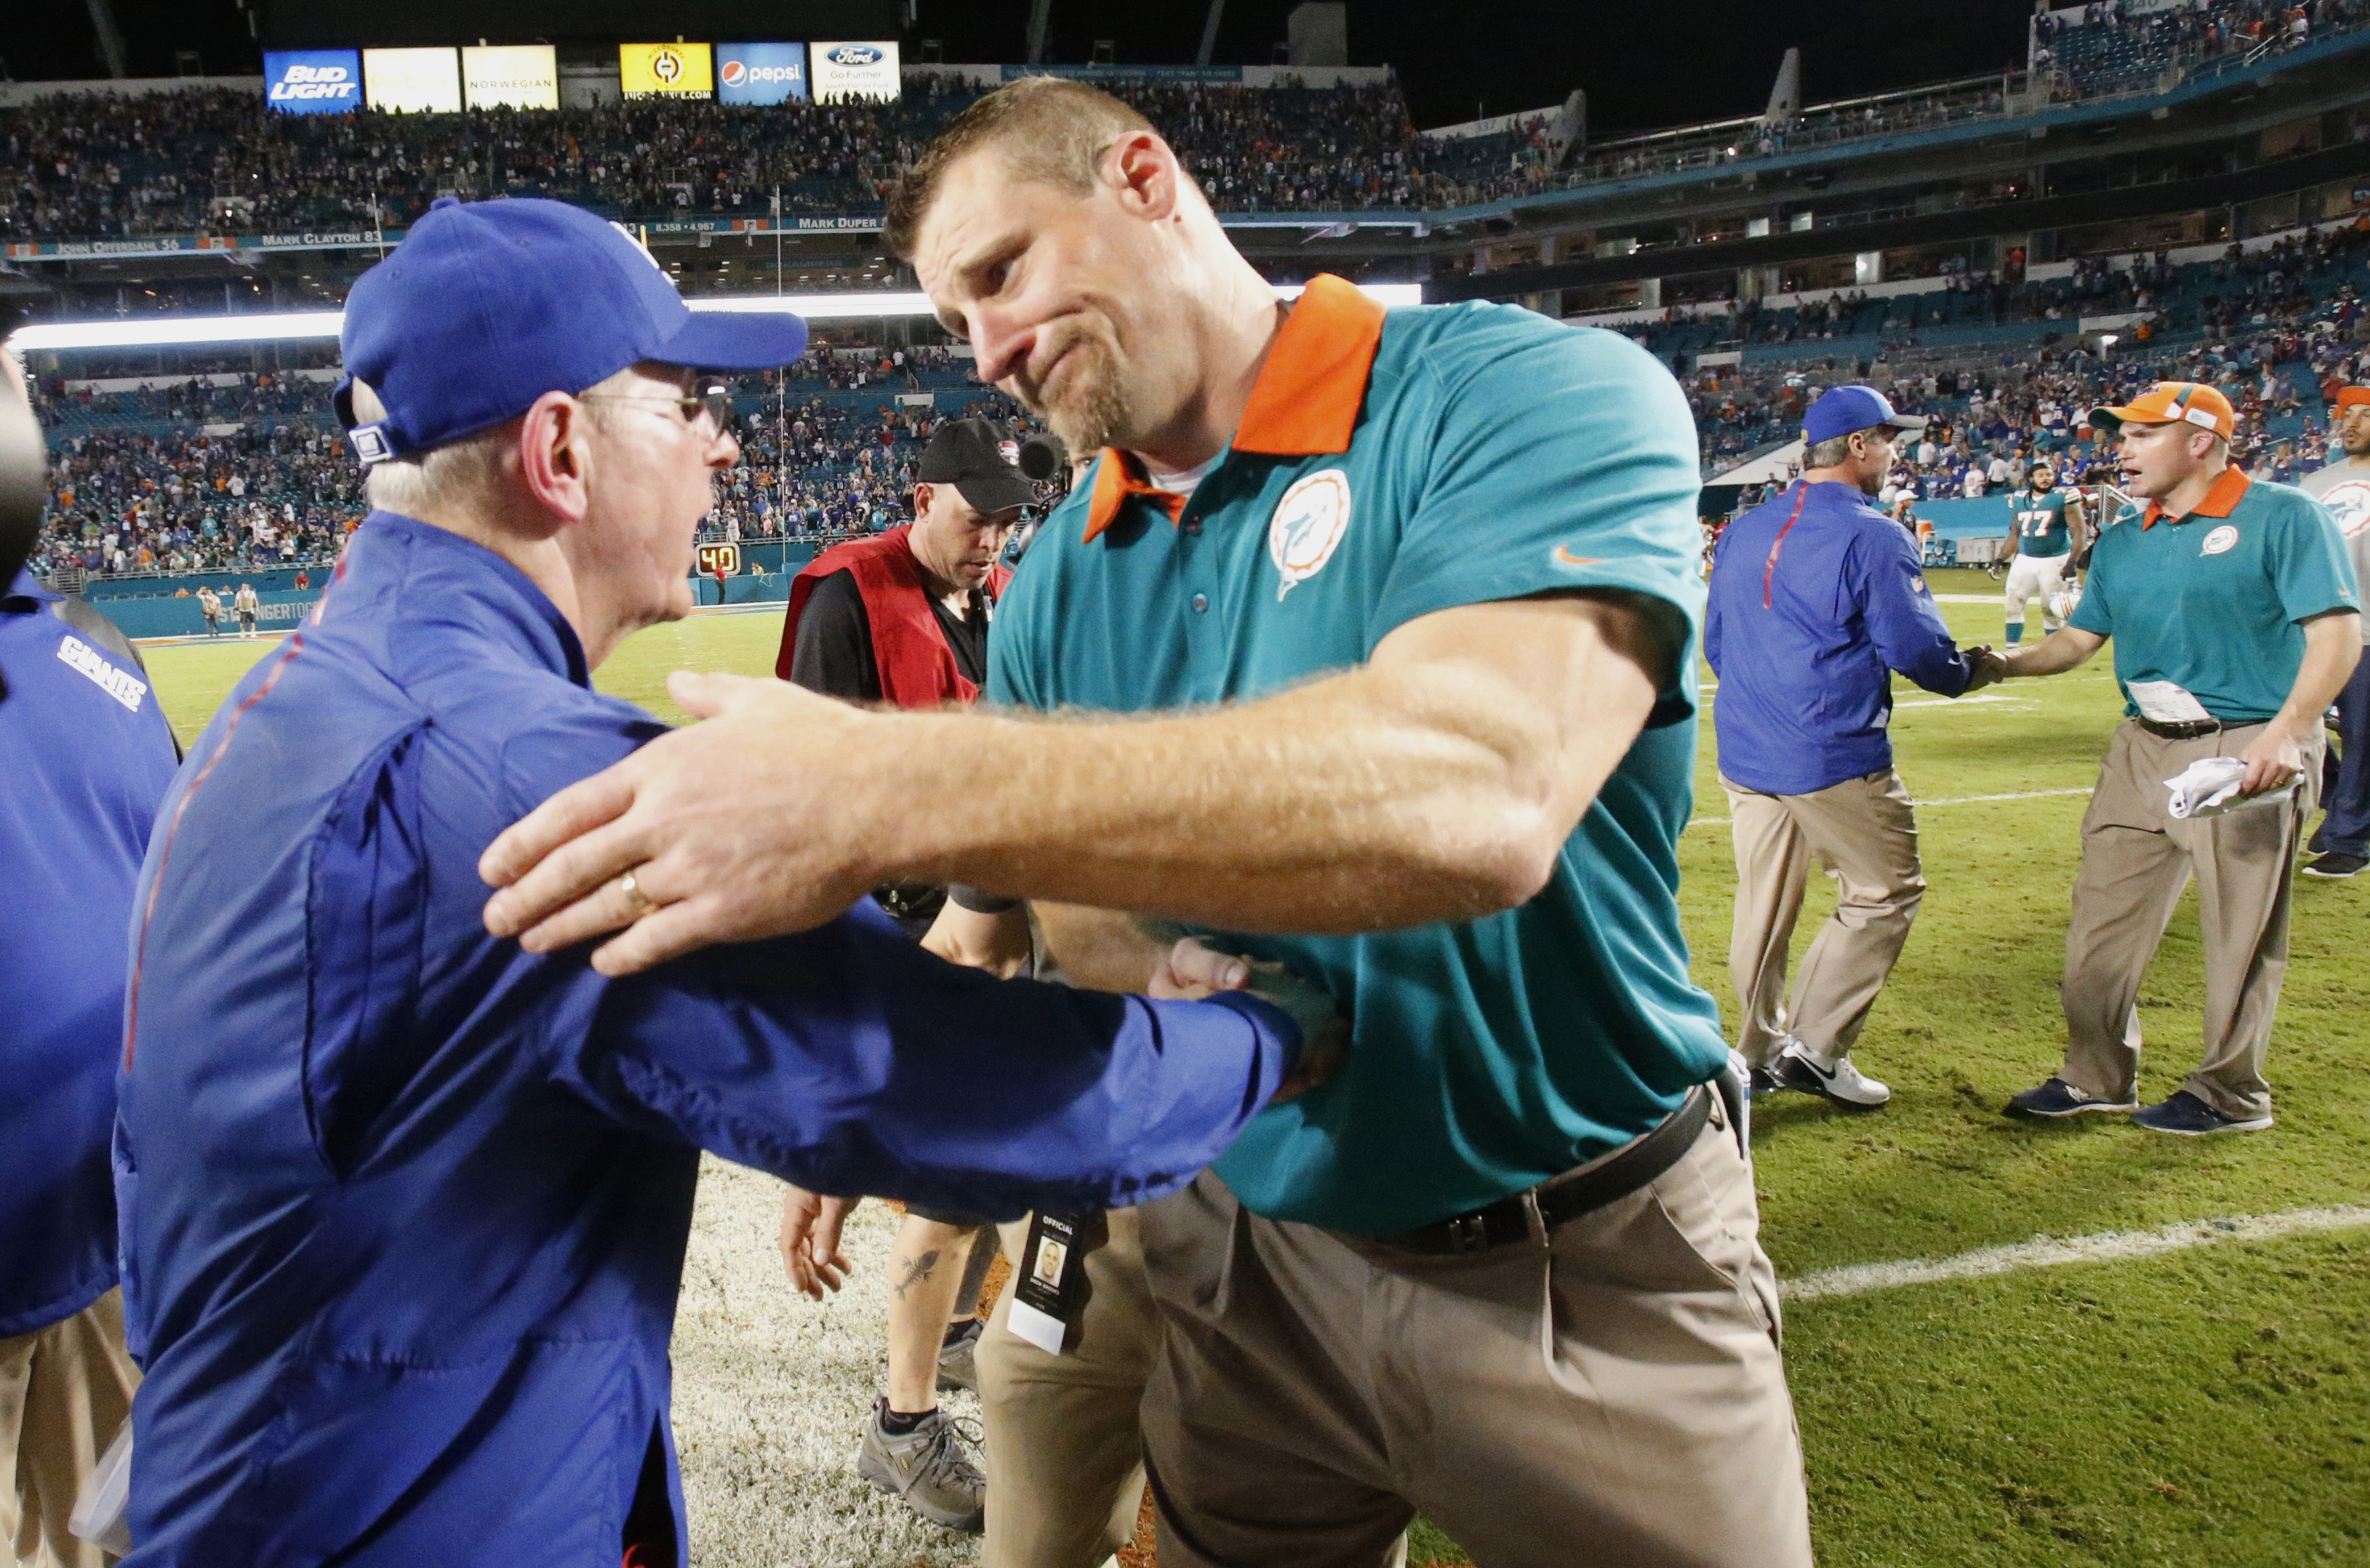 New York Giants head coach Tom Coughlin, left, and Miami Dolphins interim head coach Dan Campbell greet at the end of an NFL football game, Monday, Dec. 14, 2015, in Miami Gardens, Fla. The Giants defeated the Dolphins 31-24. (AP Photo/Wilfredo Lee)